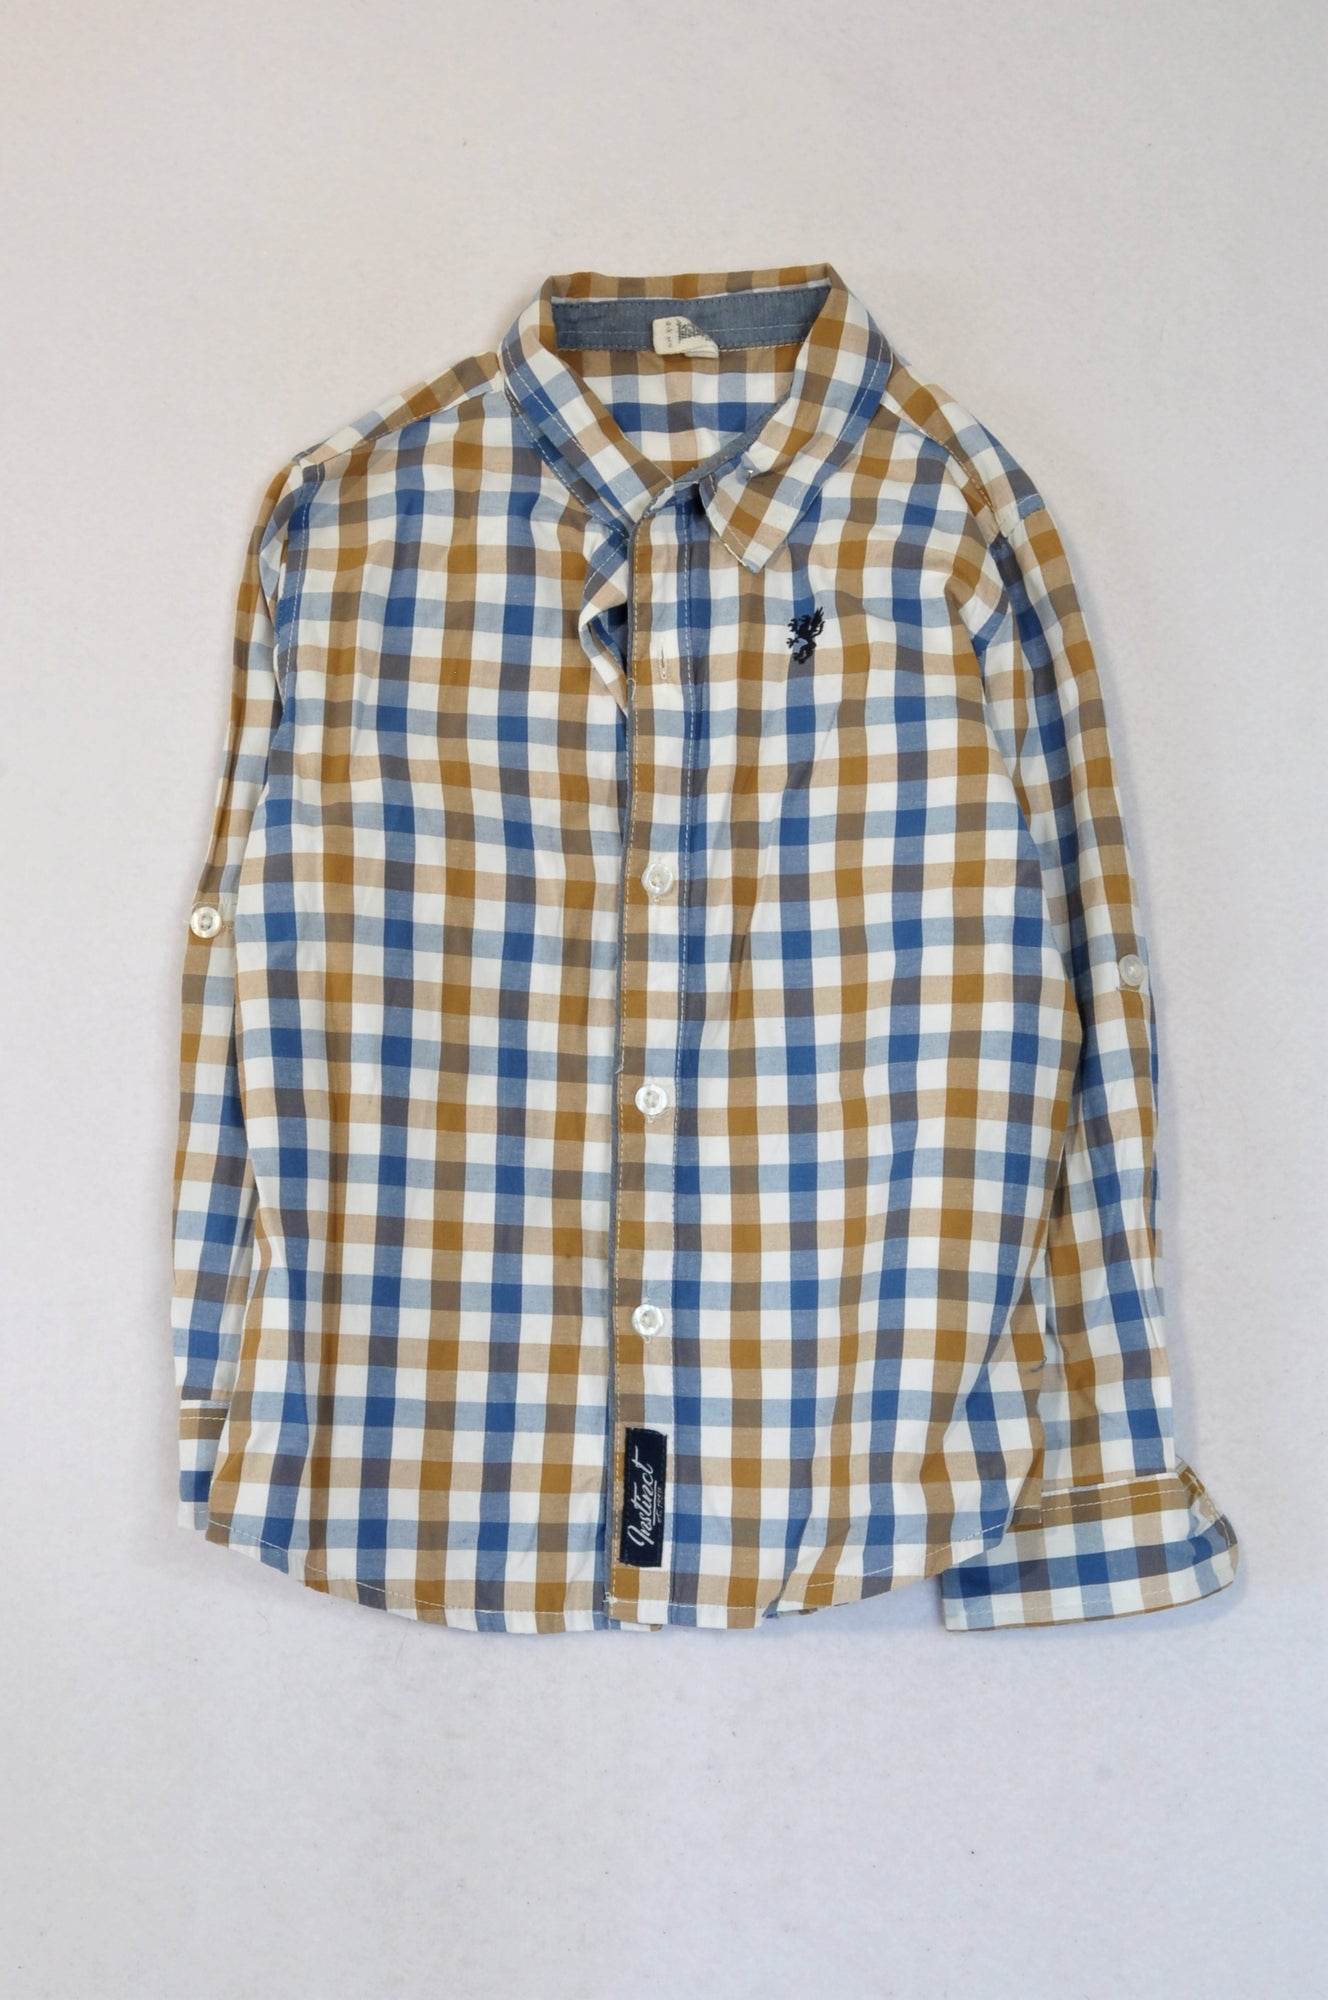 Instinct Beige & Blue Small Check Button Long Sleeve Shirt Boys 5-6 years